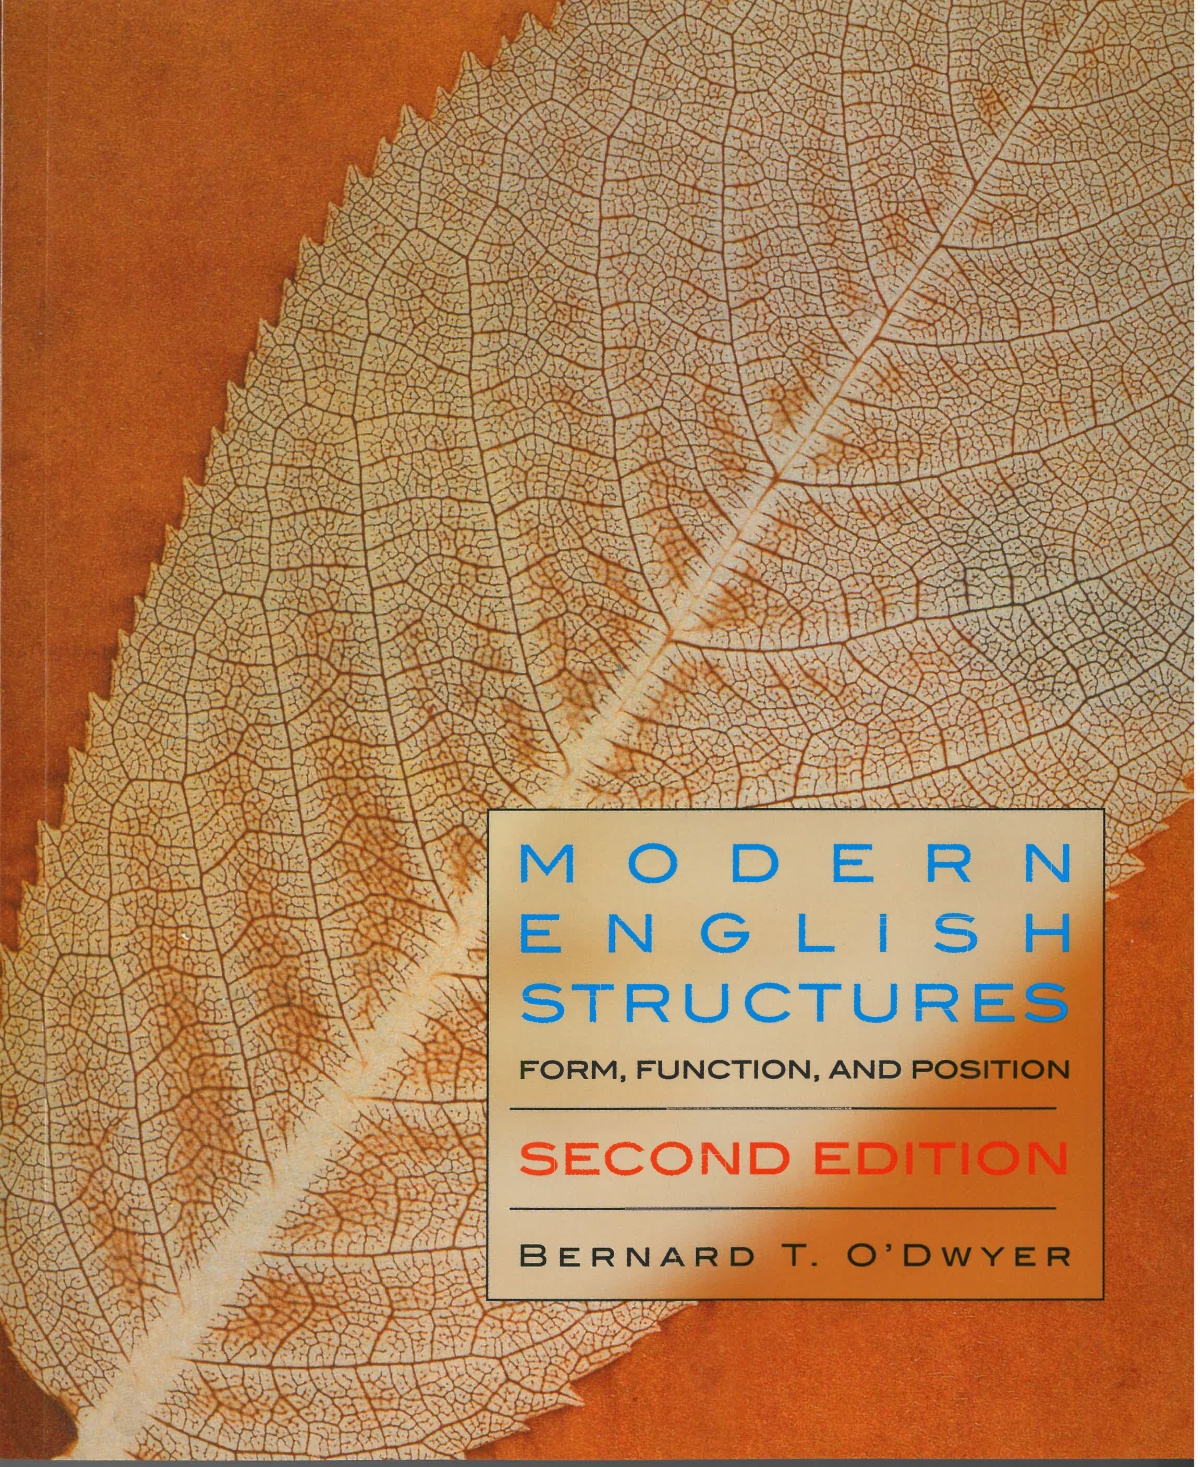 Modern English Structures - Second Edition - Broadview Press